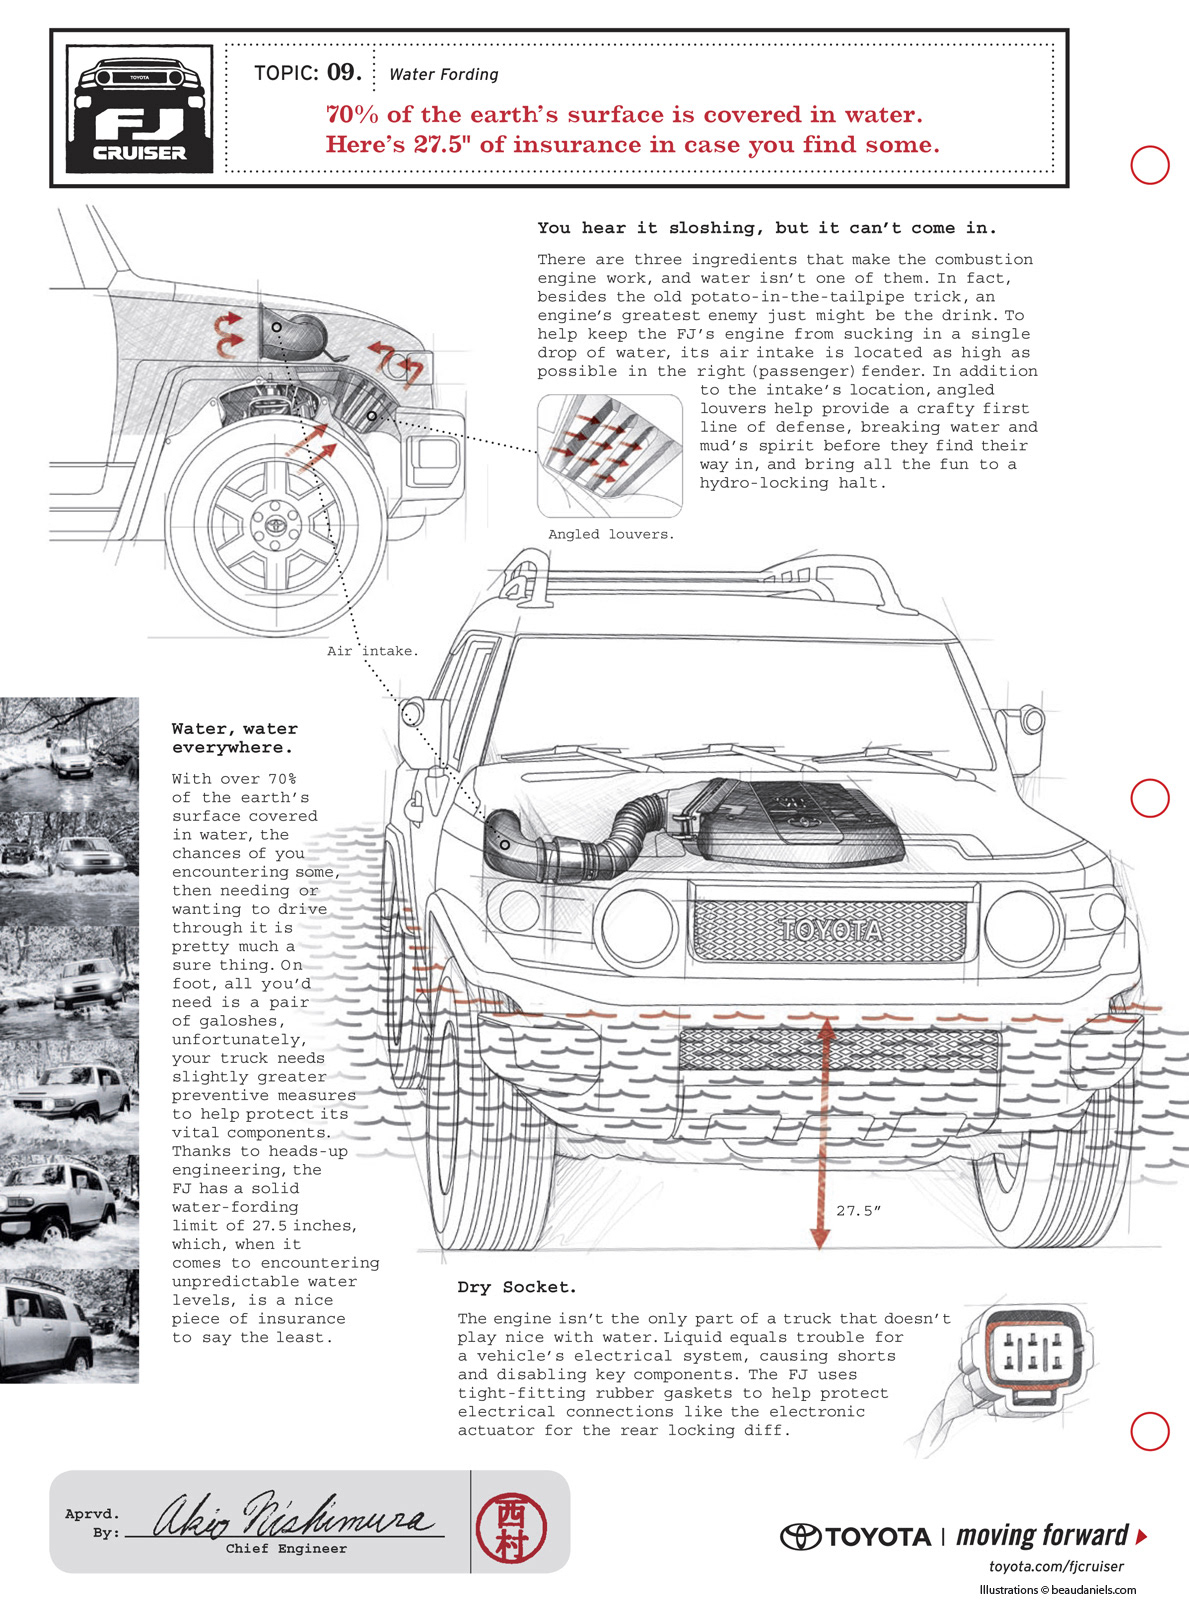 Technical Illustration Beau And Alan Daniels Toyota Fj Cruiser Ads Auxiliary Lights Wiring Diagram Water Fording